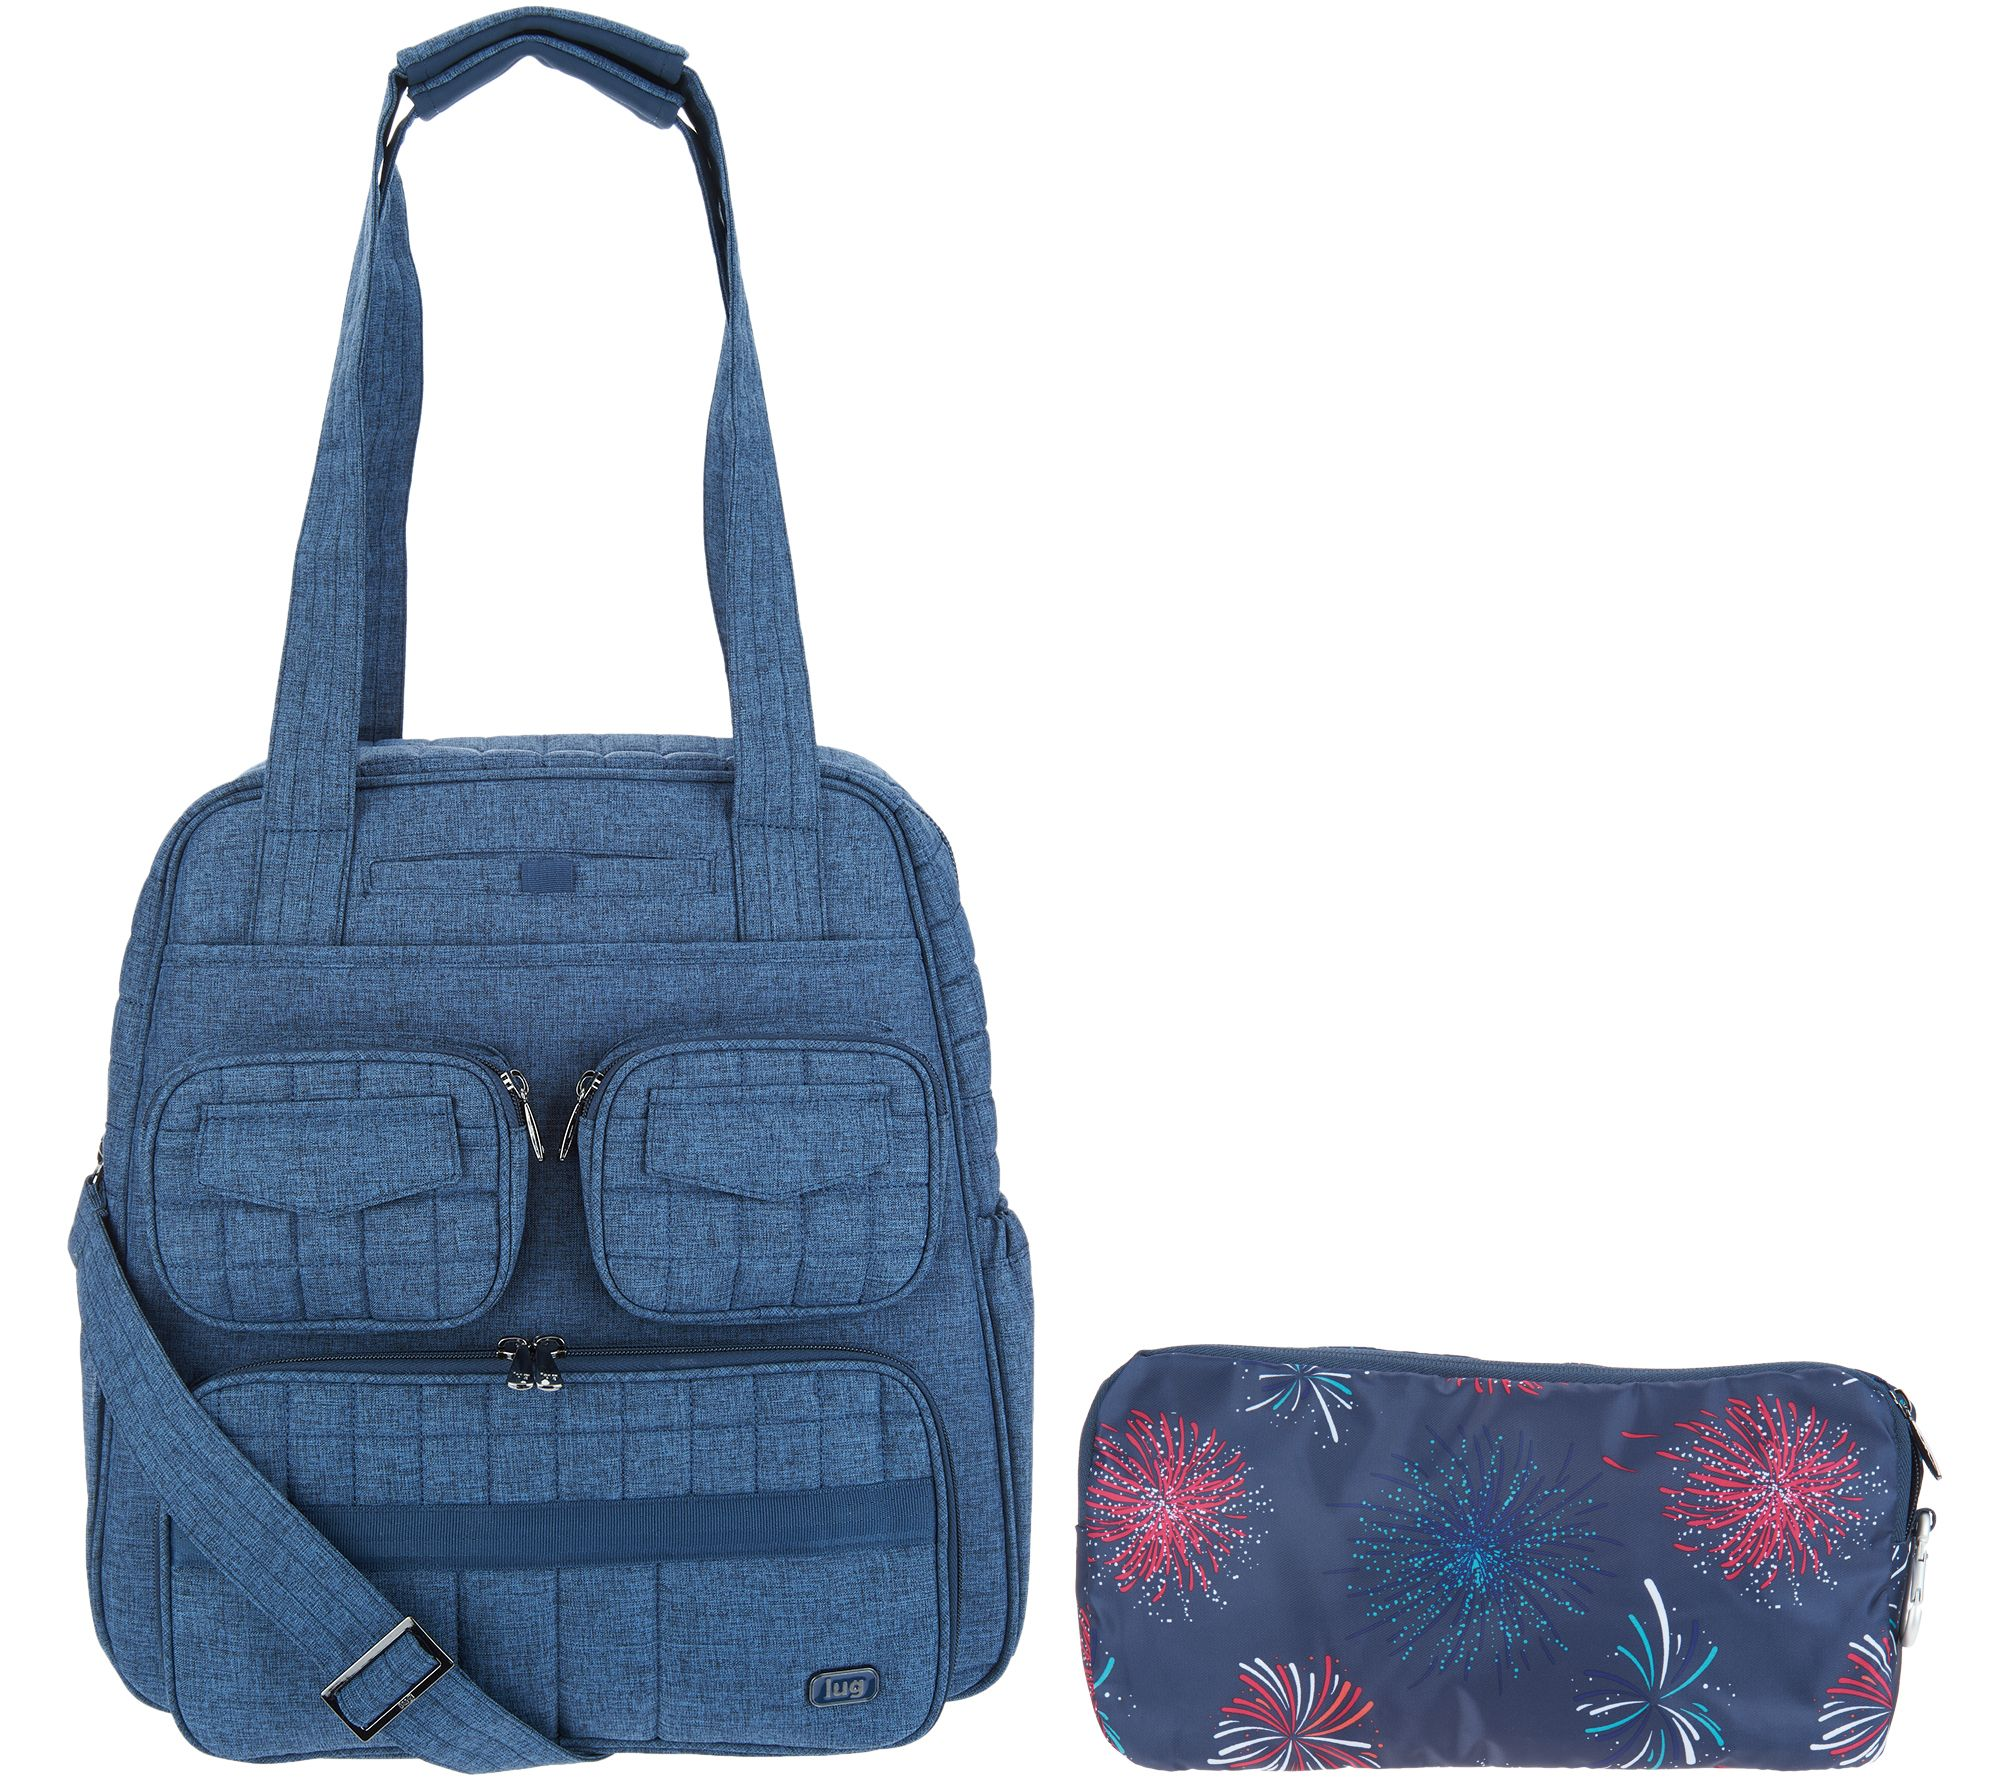 Lug Puddle Jumper Travel Bag with Packable Carry-All - Page 1 — QVC.com